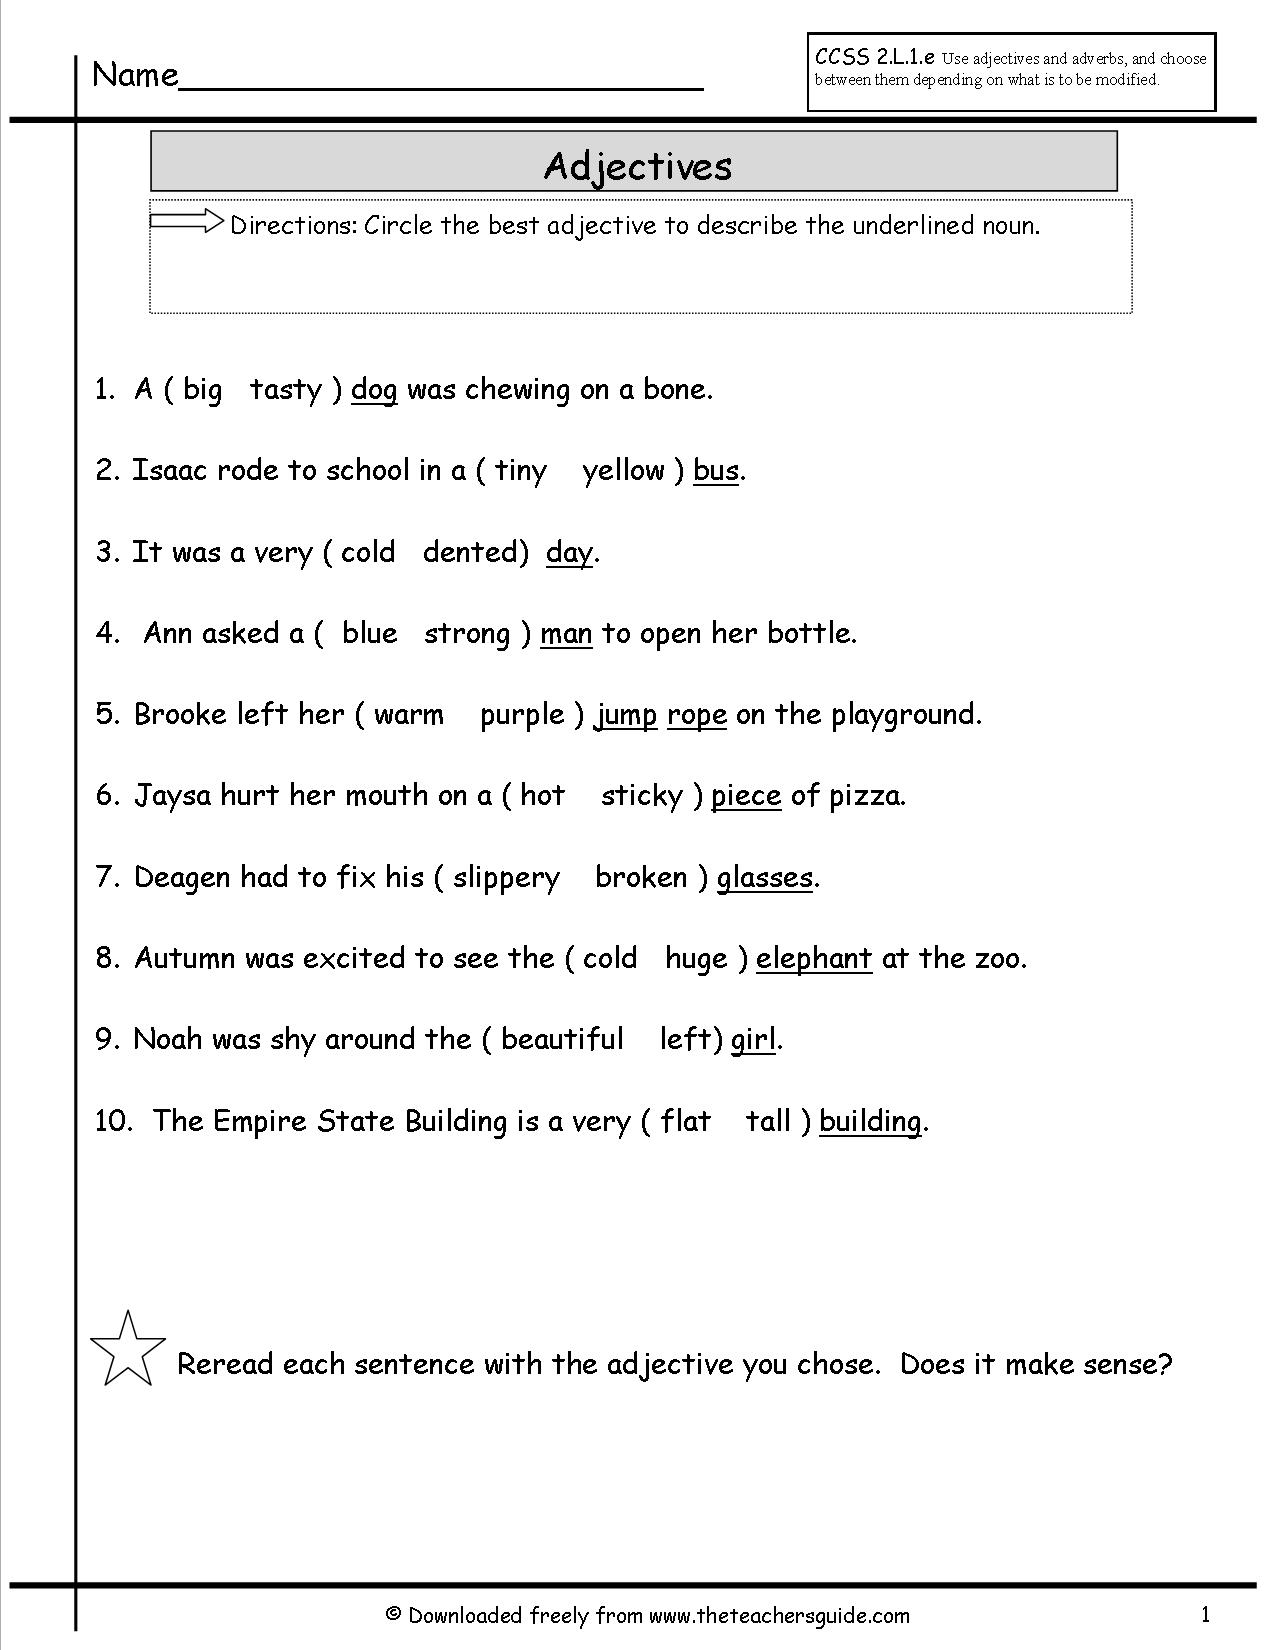 Worksheet For Grade 6 English Grammar